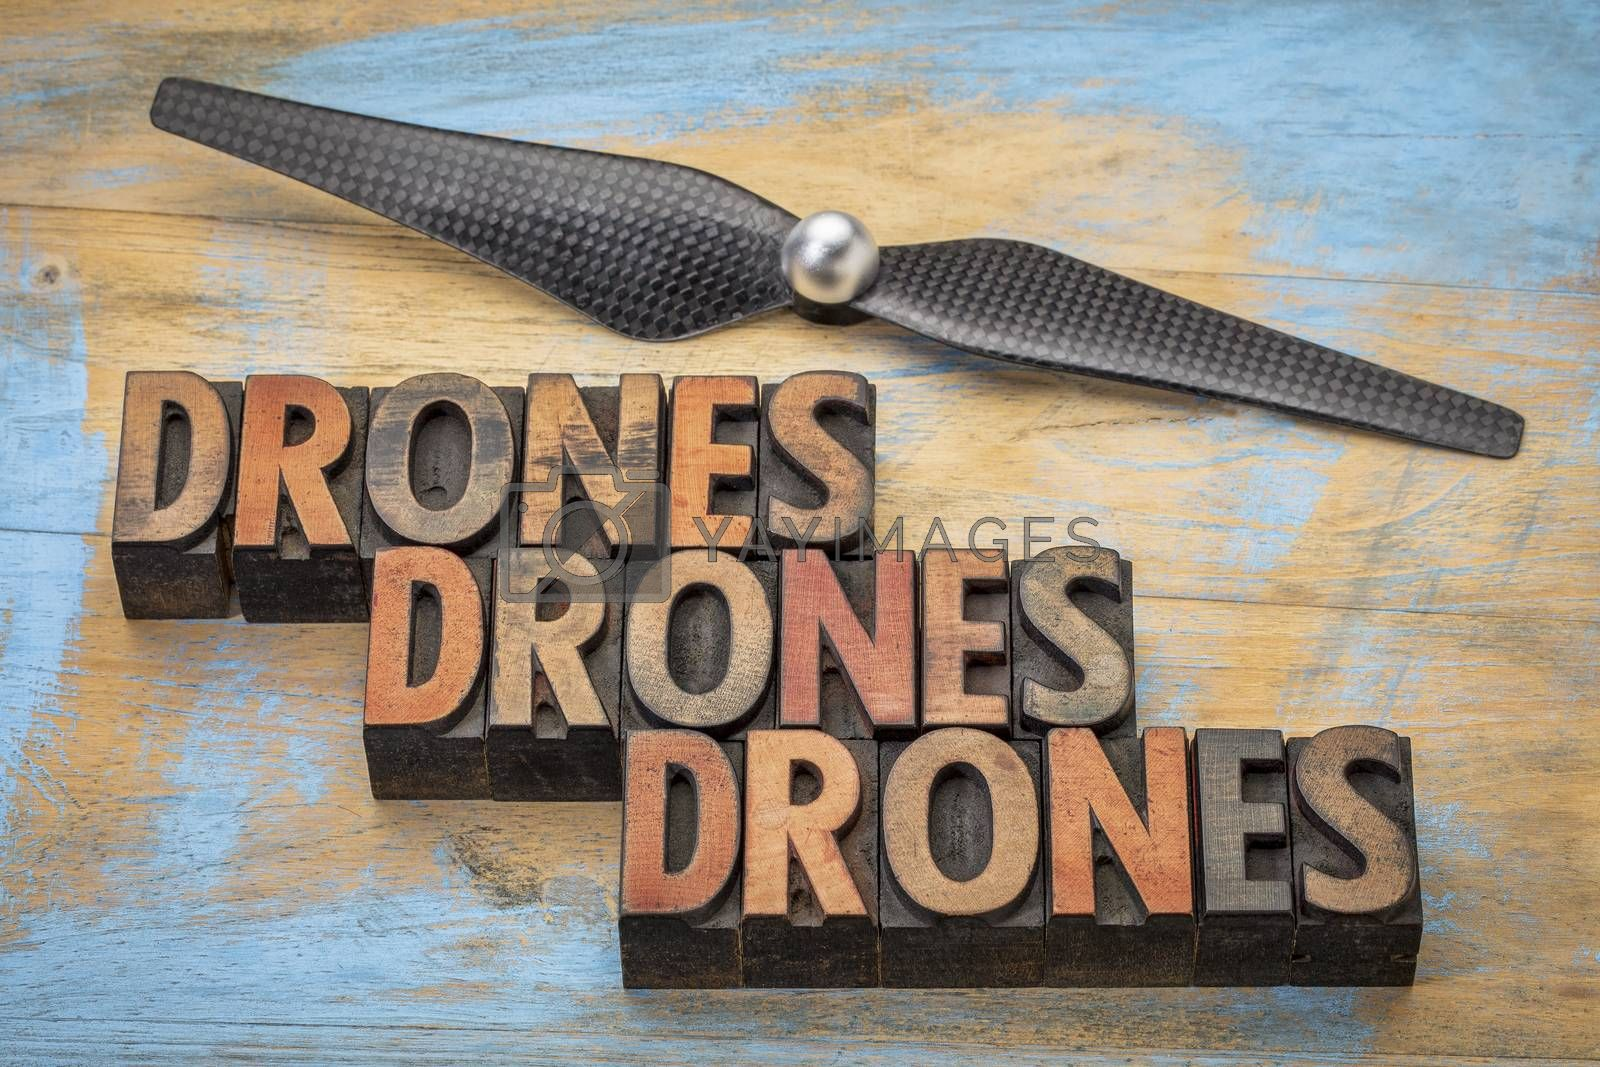 drones word abstract in vintage letterpress  wood type with a drone propeller - new aircraft technology concept